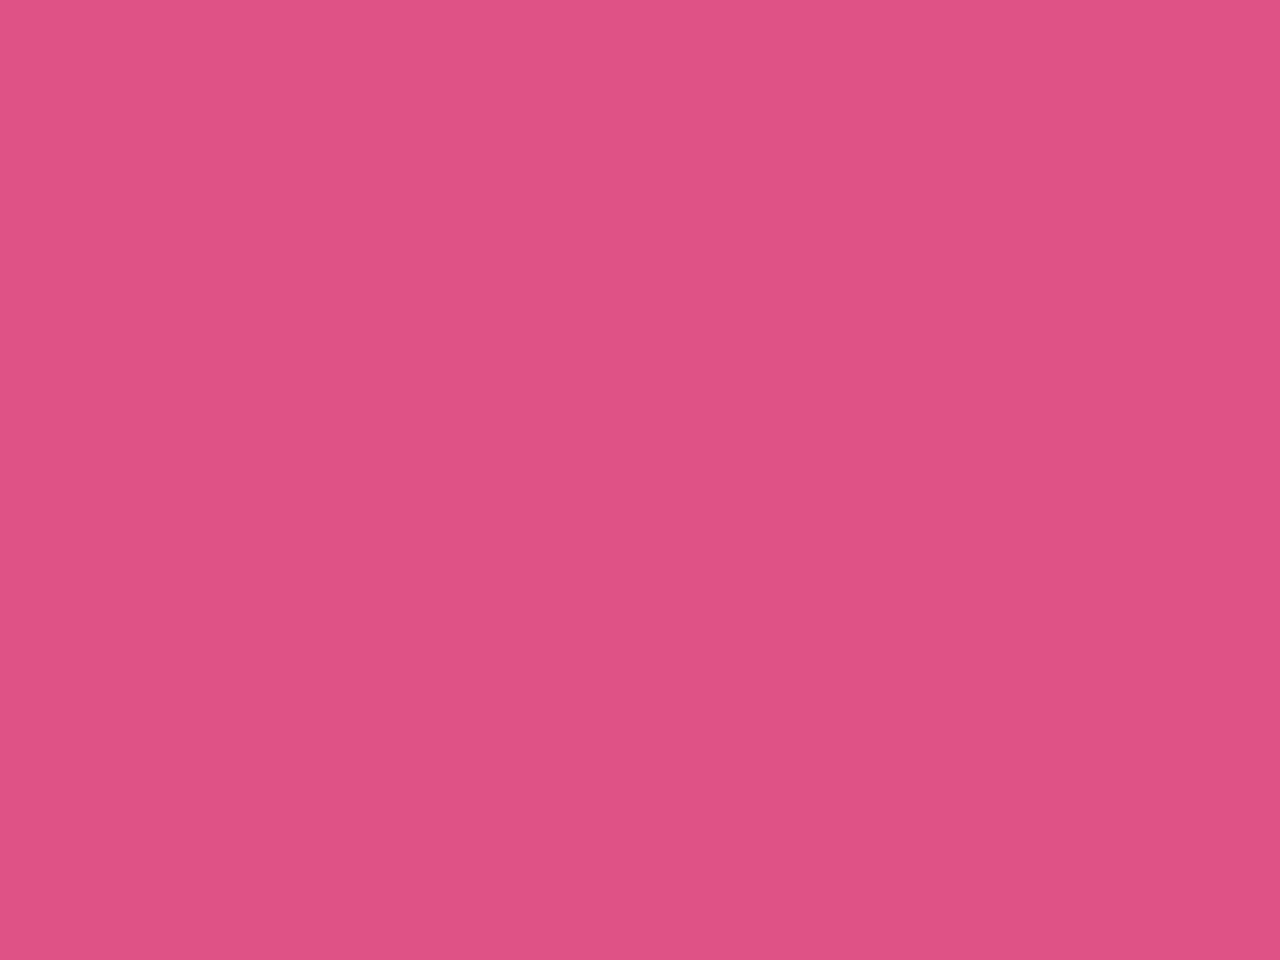 1280x960 Fandango Pink Solid Color Background